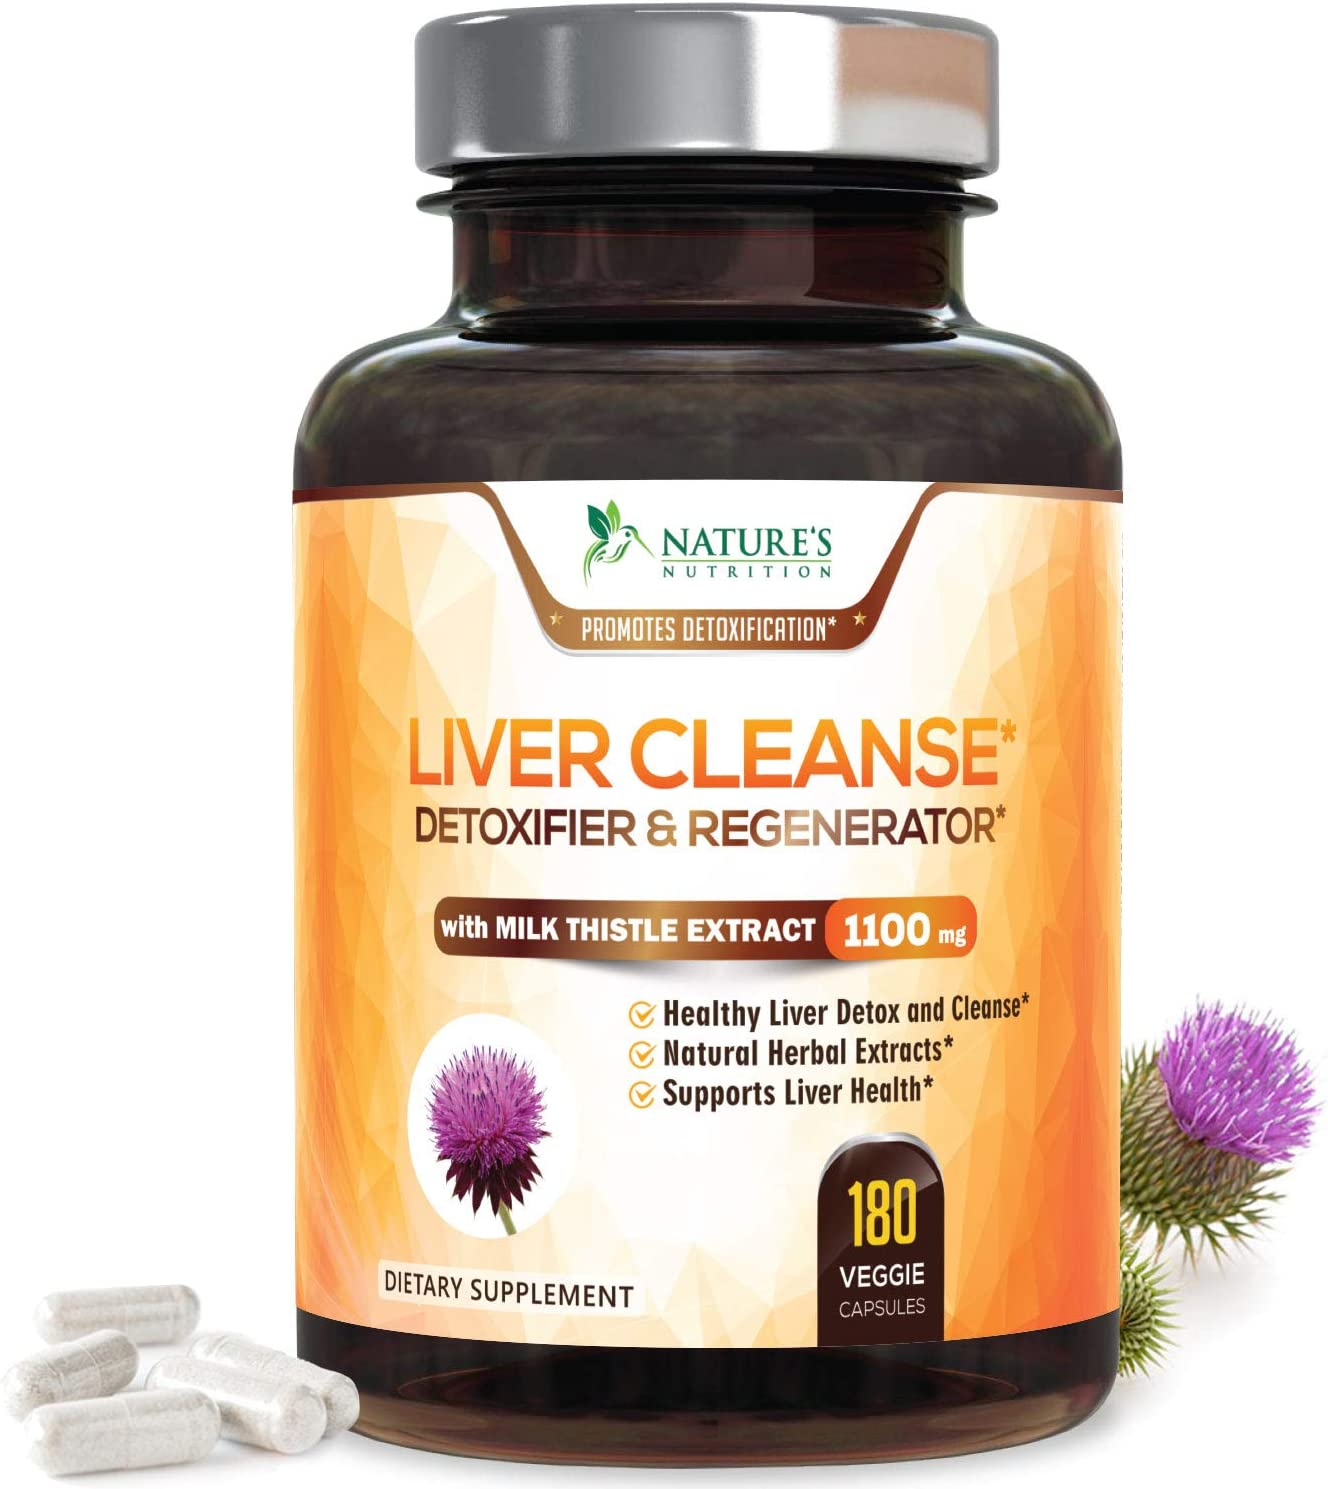 Liver Cleanse Detox Repair Formula 1100mg – Highest Potency 22 Herbs, Made in USA, Best Milk Thistle Extract, Silymarin, Beet, Artichoke, Dandelion, Chicory, Support Supplement – 180 Capsules